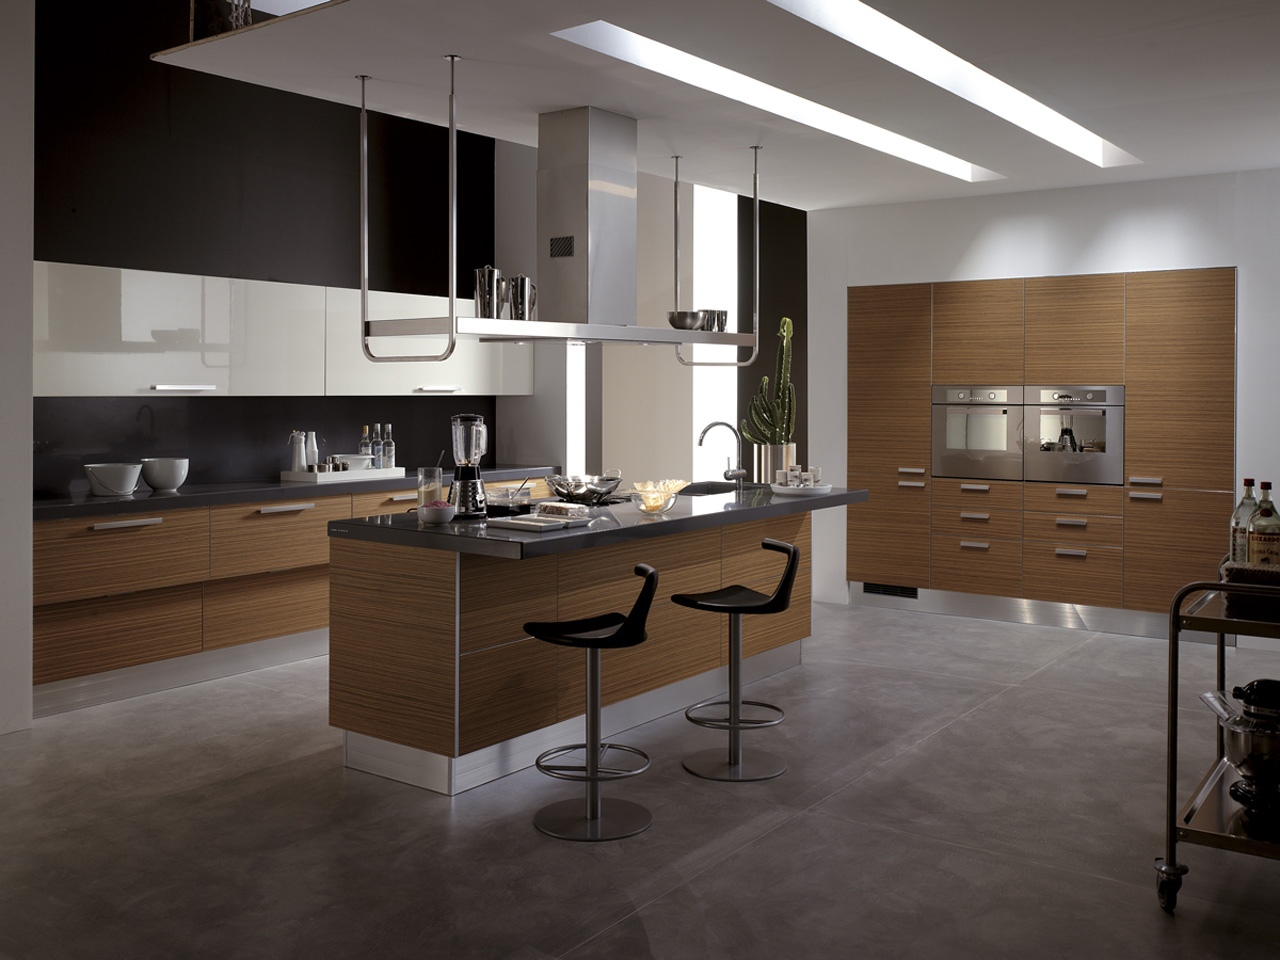 european kitchen design ideas photo - 10